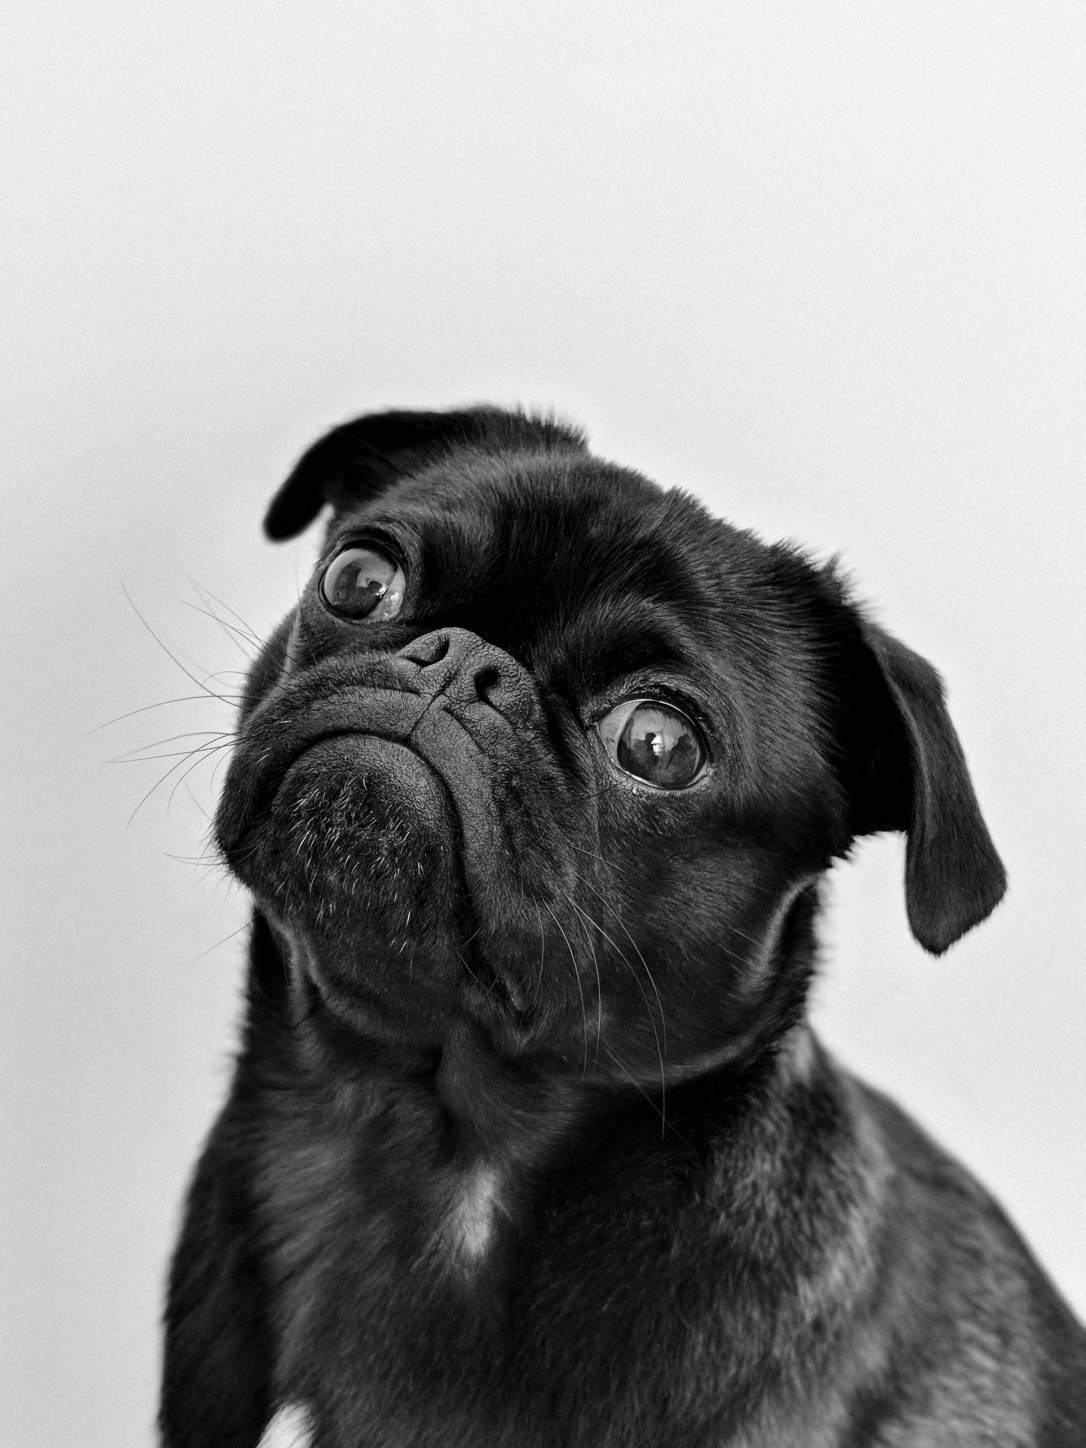 a black pug looking quizzical with head tilted